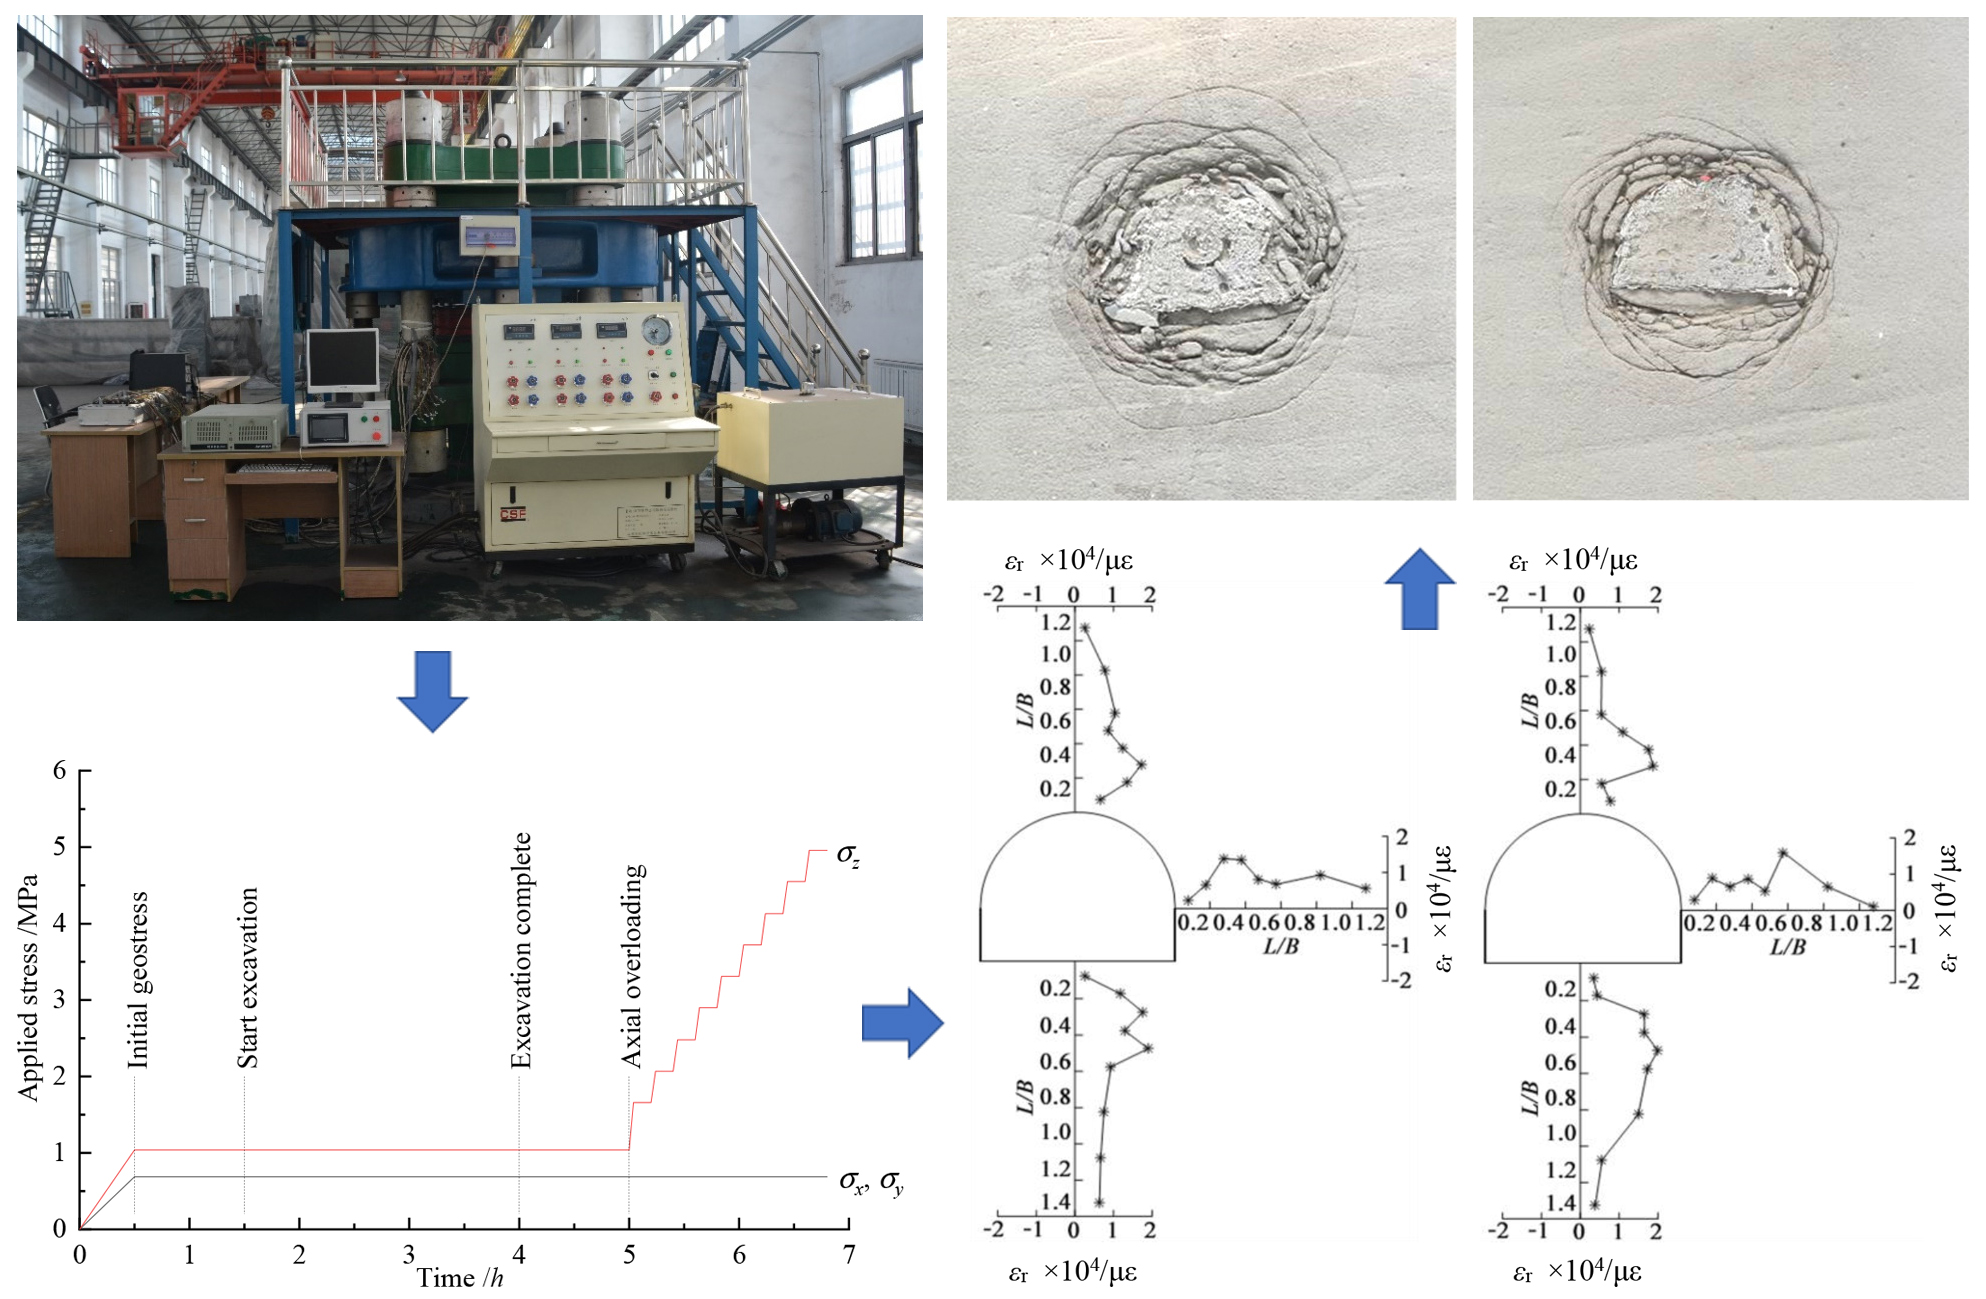 Analyses on deformation and fracture evolution of zonal disintegration during axial overloading in 3D geomechanical model tests